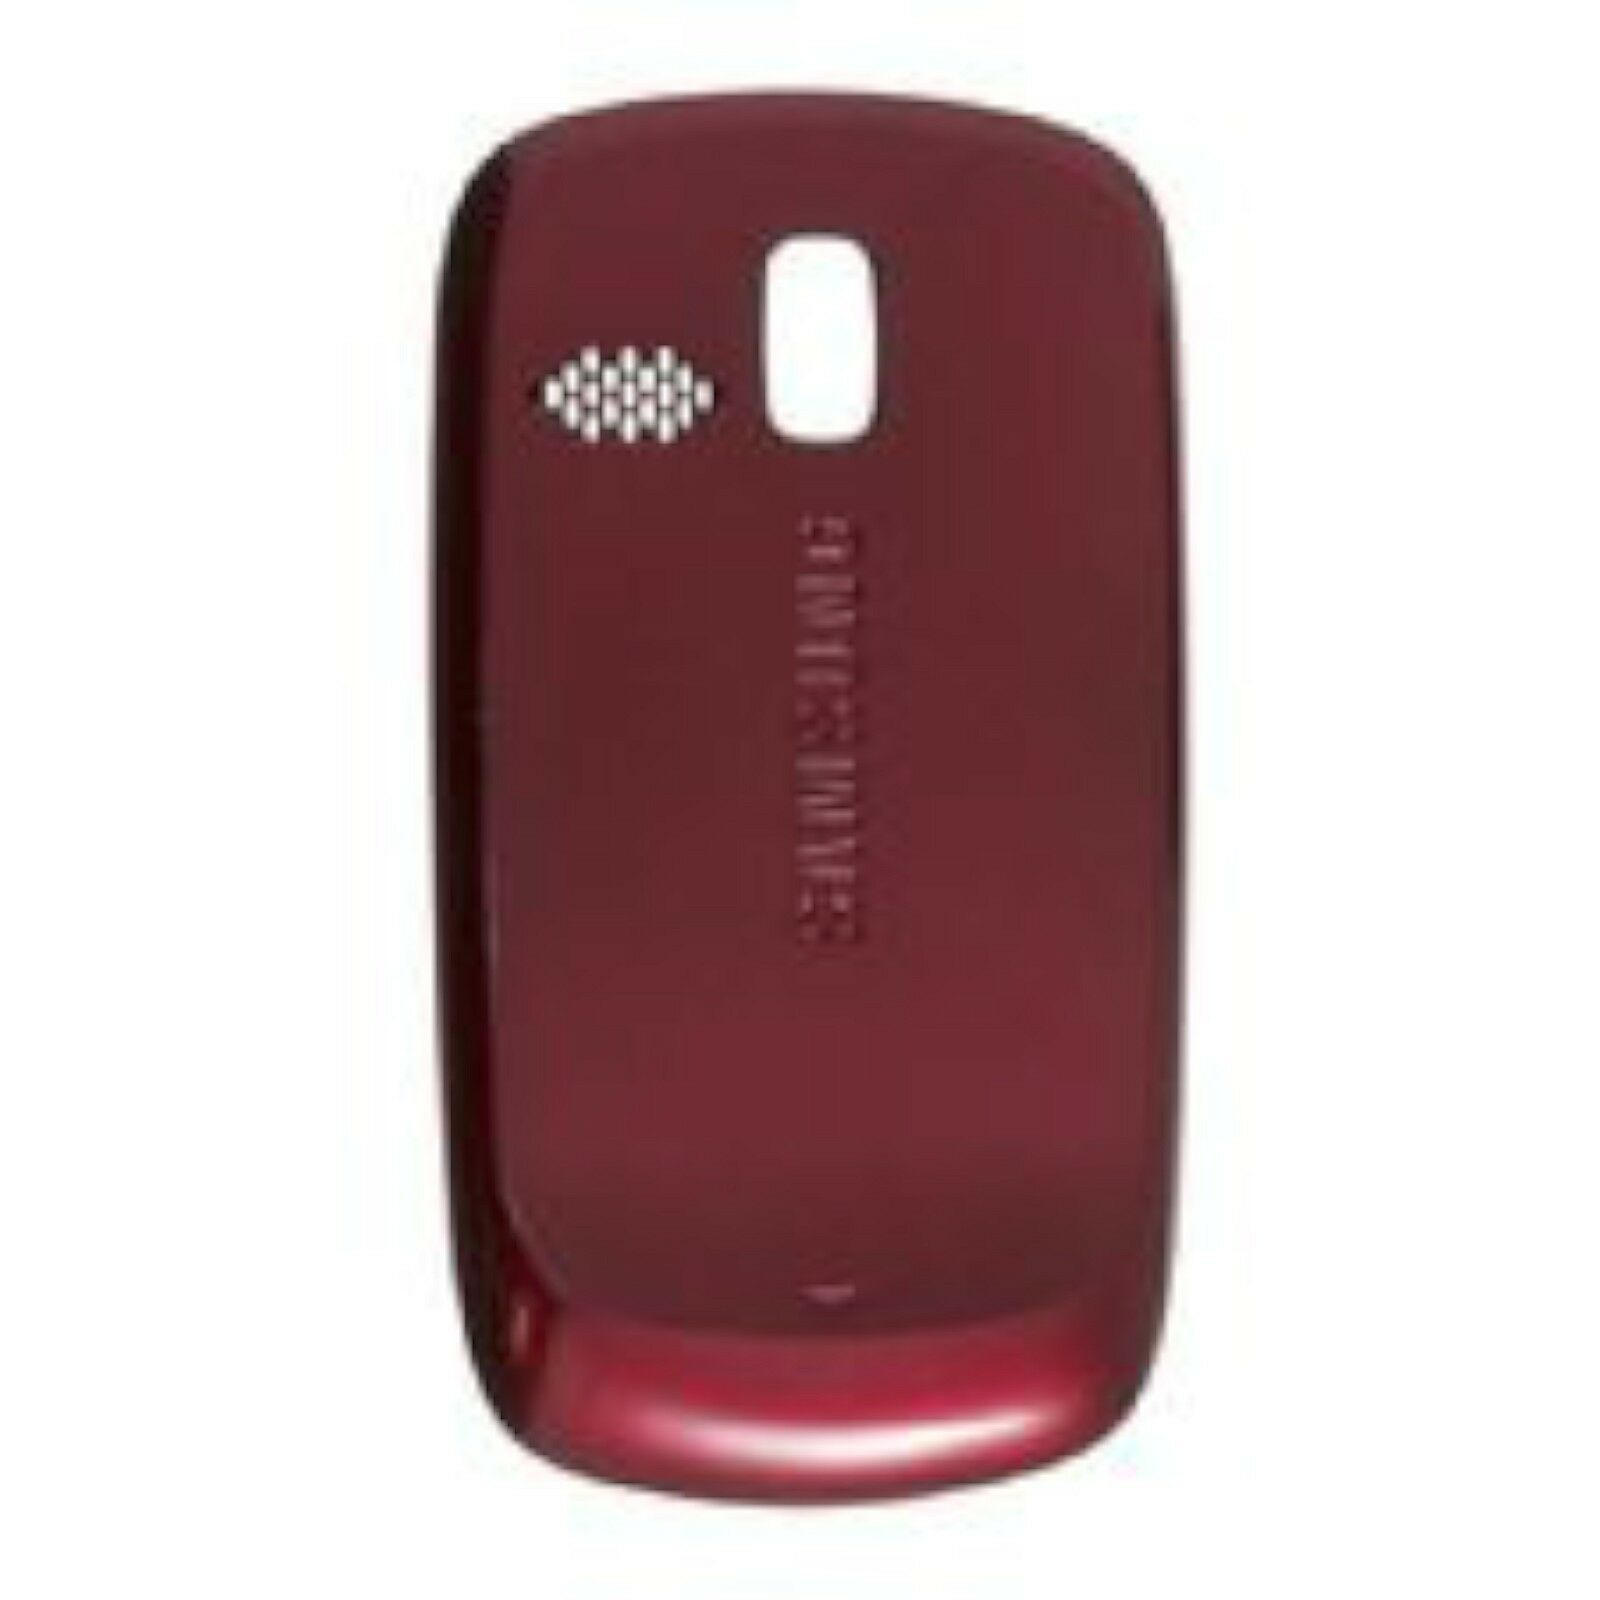 Samsung Cr350 Freeform Cell Phone White Back Cover Auction 348 For Sale Online Ebay